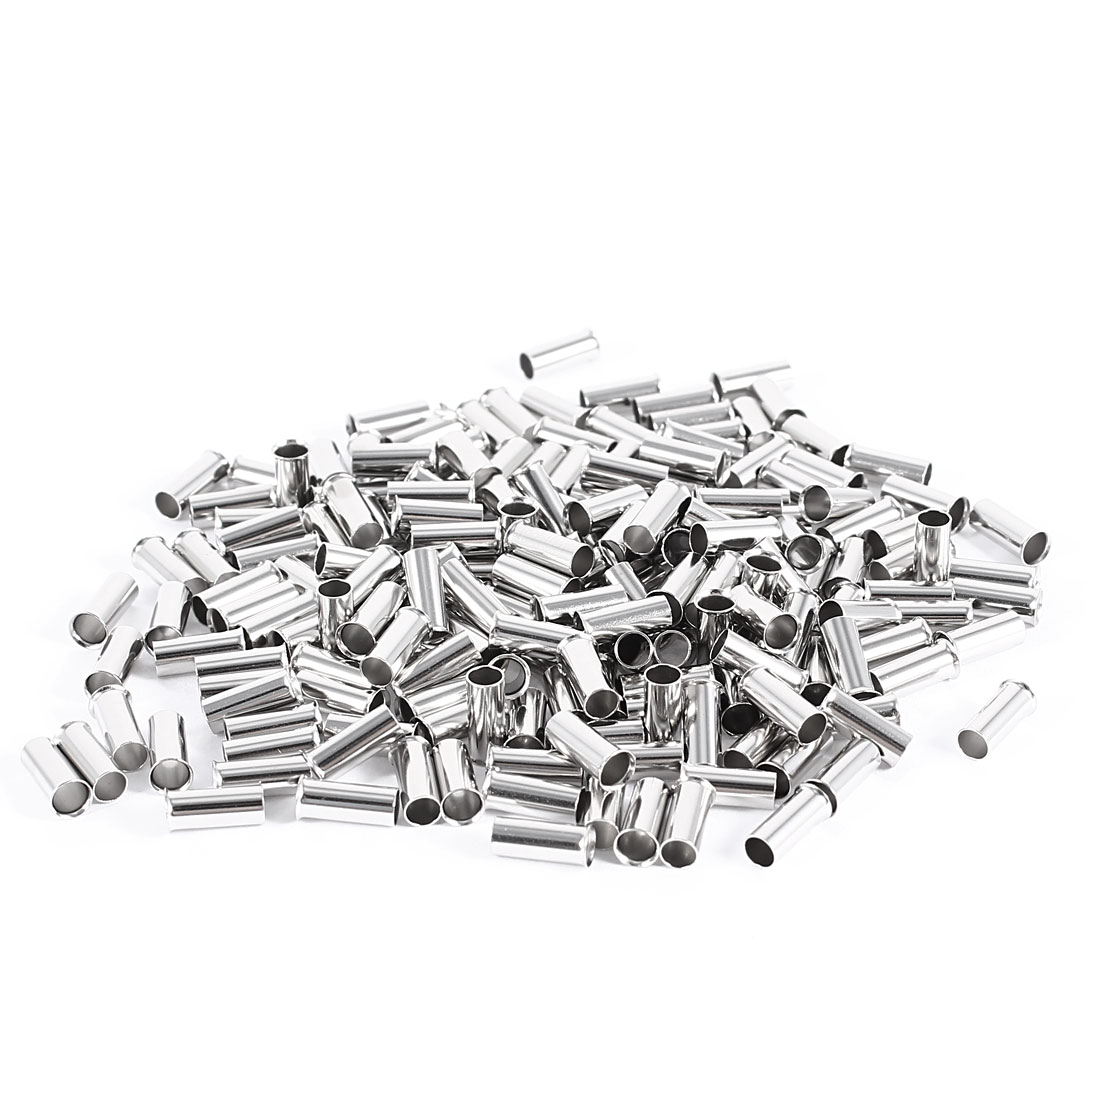 200 Pieces Silver Tone EN4009 Copper A.W.G 12 8mmx4mm Non-Insulated Wire Ferrule